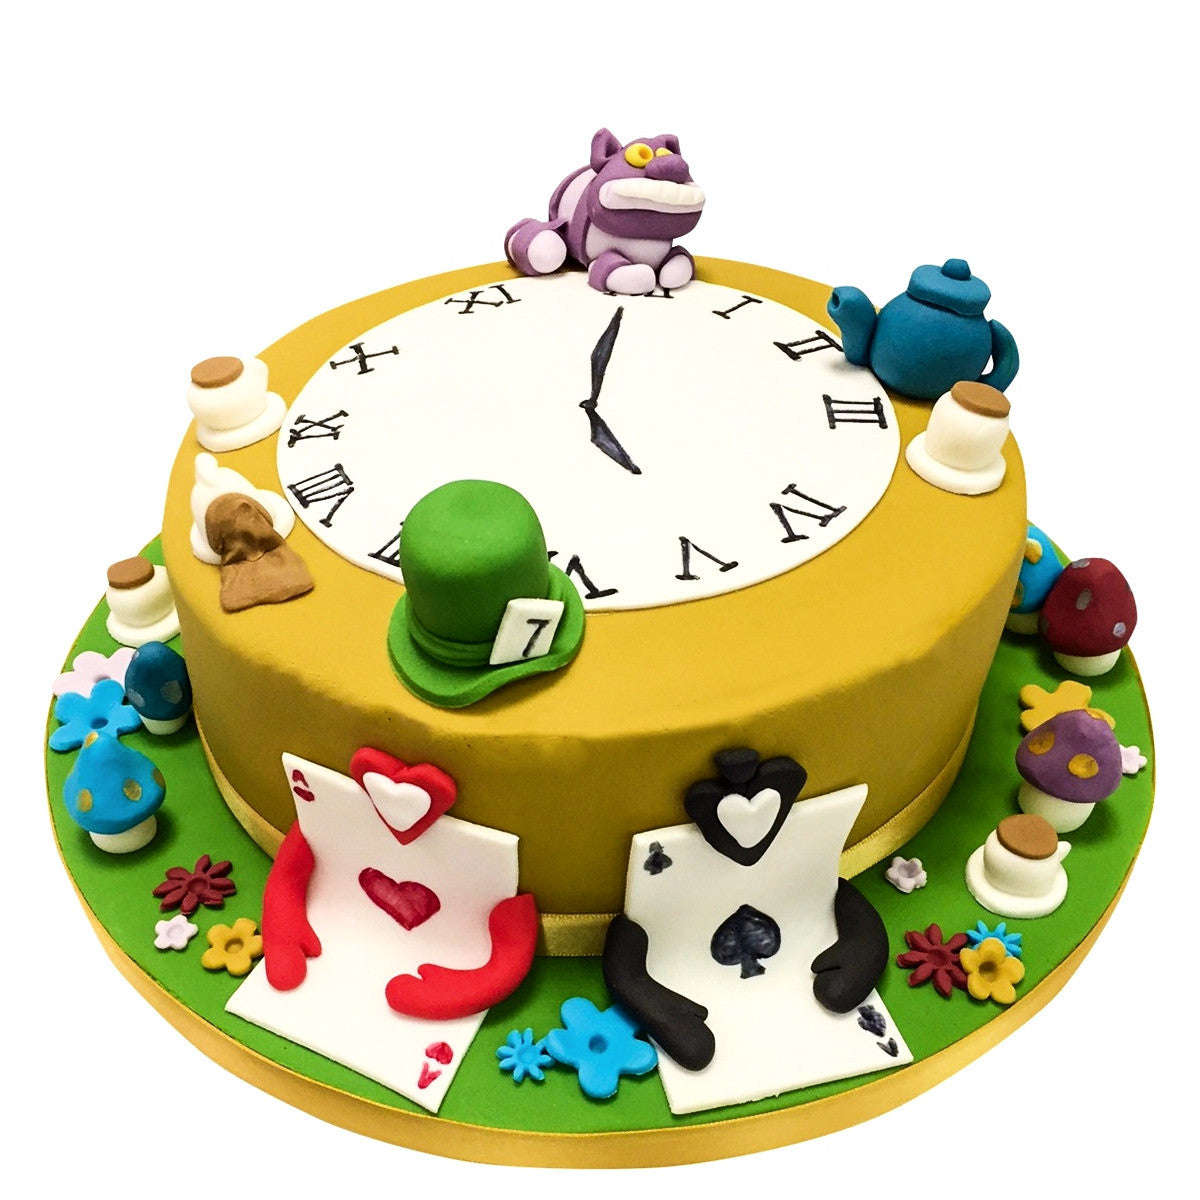 Sensational Alice In Wonderland Cake Buy Online Free Uk Delivery New Cakes Personalised Birthday Cards Cominlily Jamesorg